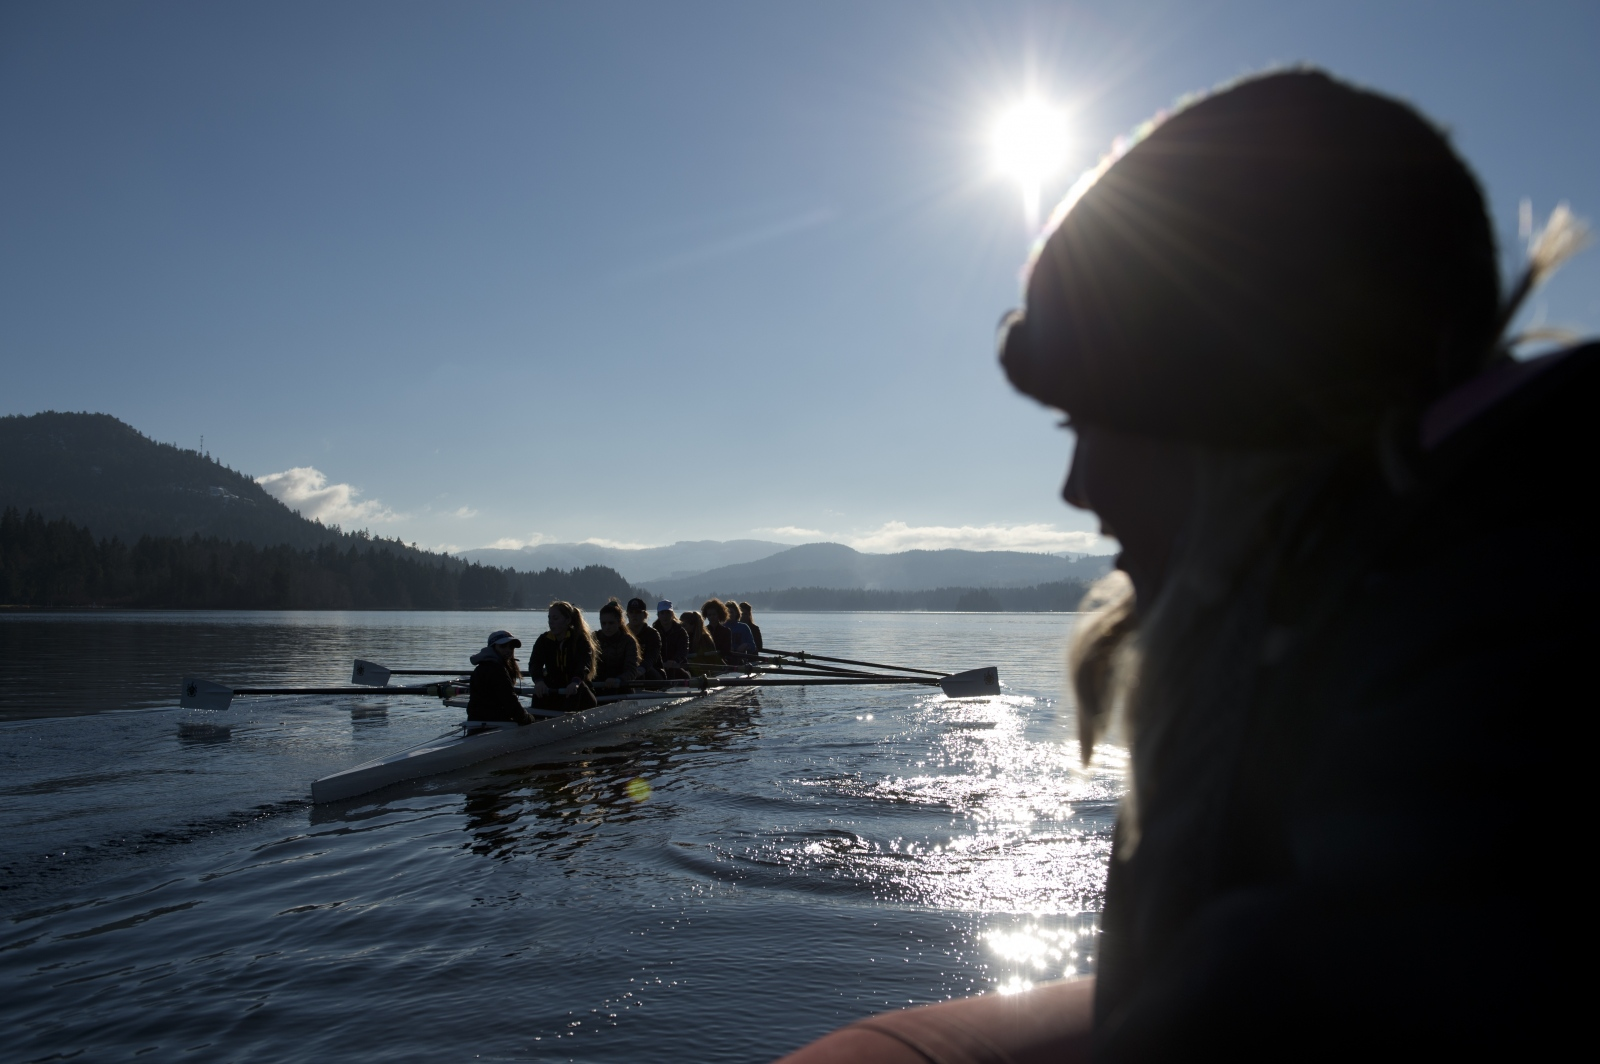 "Shawnigan Lake School student rowers sit in a coxed eight during practice on Jan. 9, 2016. The lake is home to two boarding schools, Dwight School Canada and Shawnigan Lake School. The lake is also training grounds for Rowing Canada. ""I don't think there is a kid that can go through their education at the school without experiencing the lake in a positive way,"" Colin Mattock, teacher and coach at the school, said."